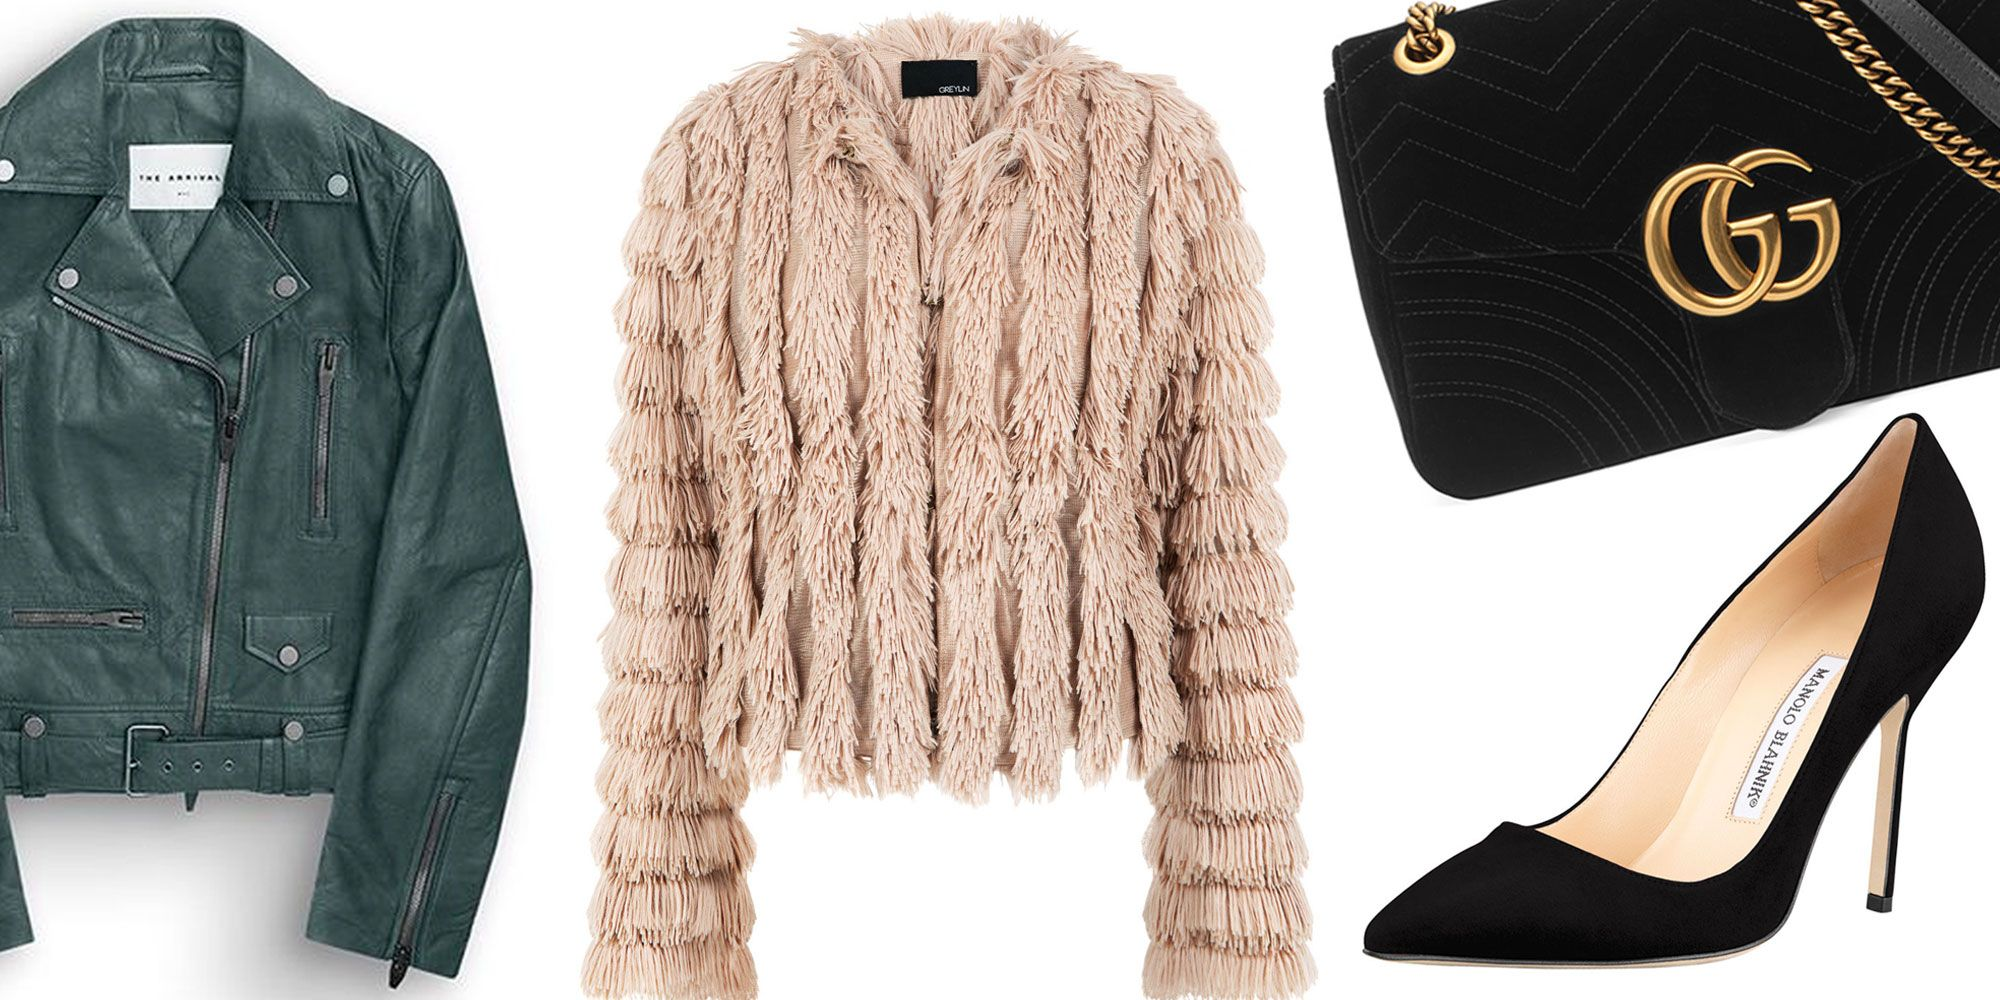 8 Best Fall Outfits For Women 2018 Fashionable Fall